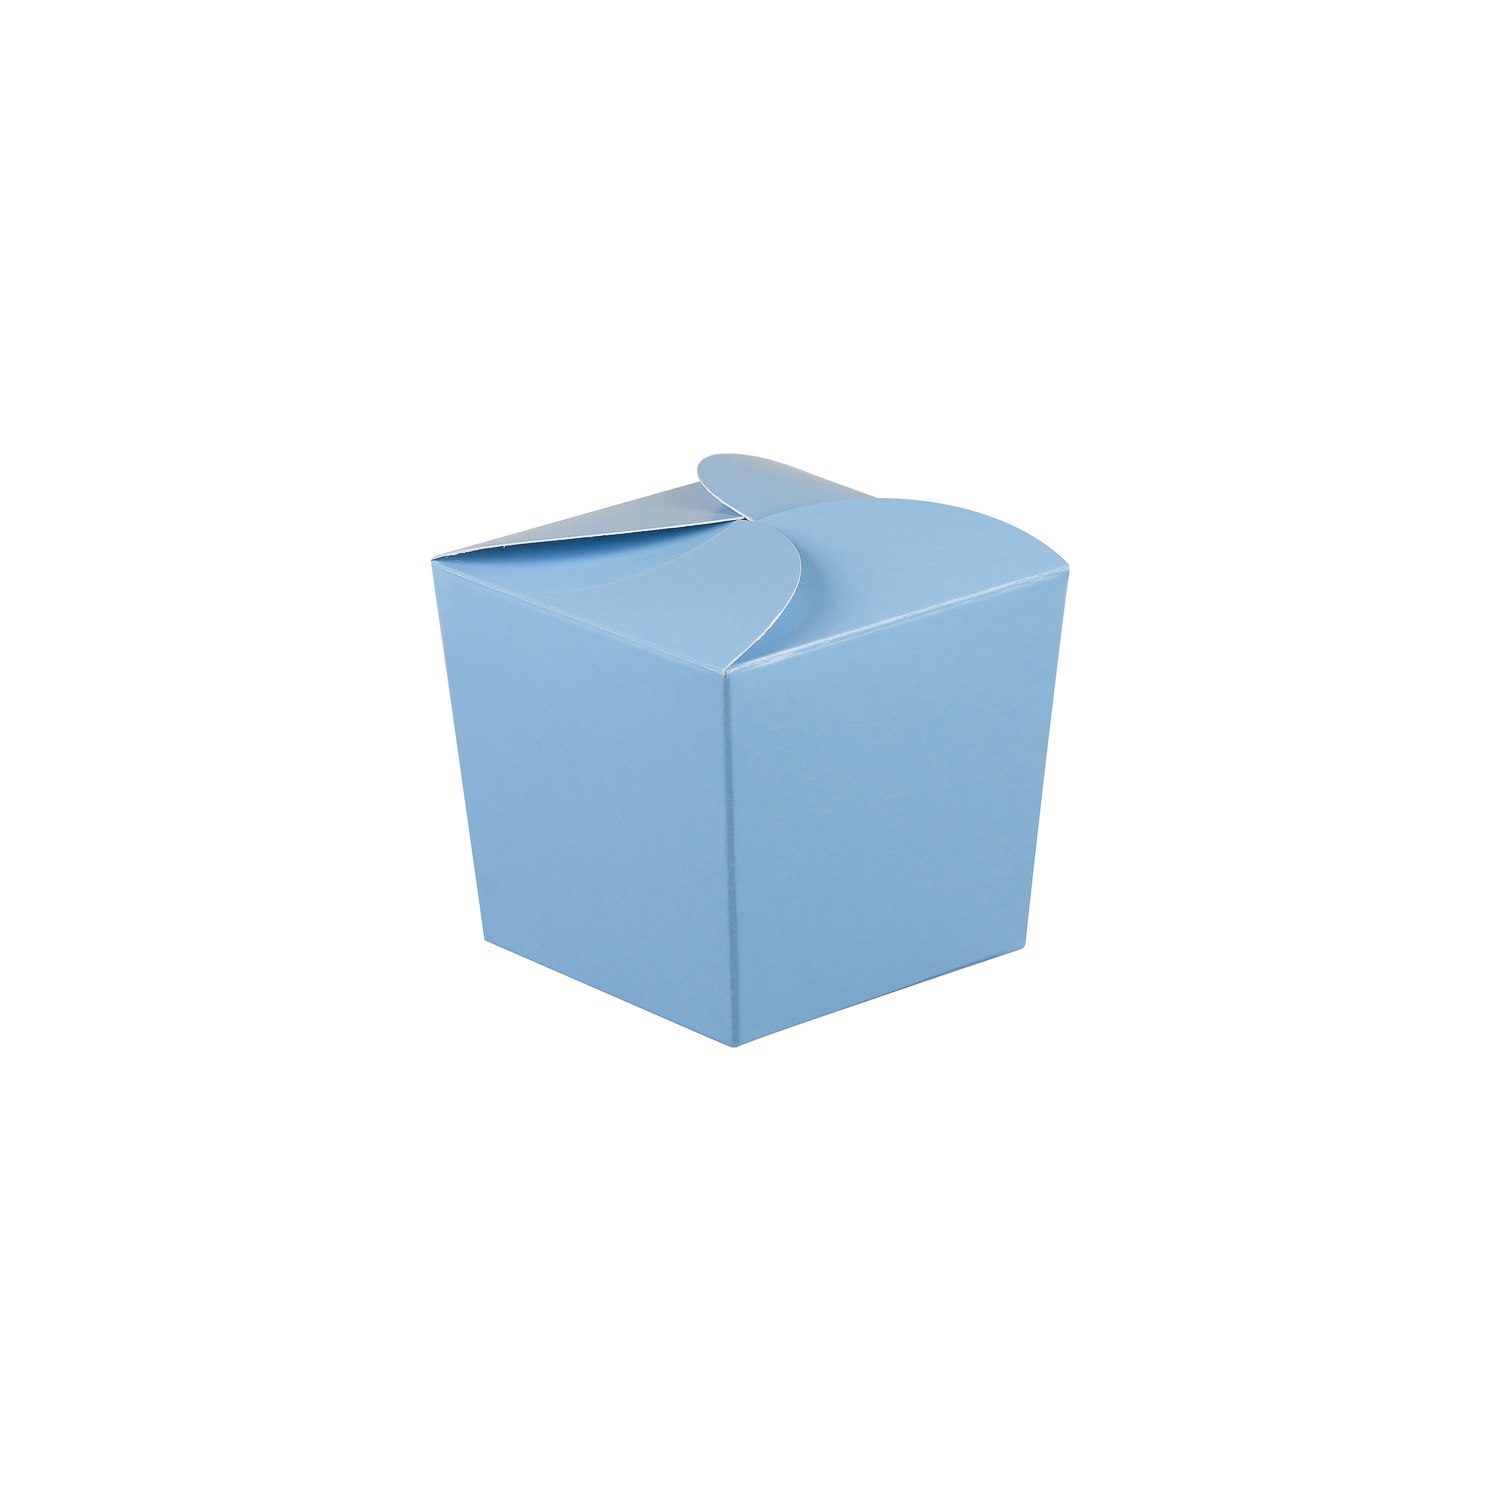 4a586b47977 Boxes | Product categories | Merrypak